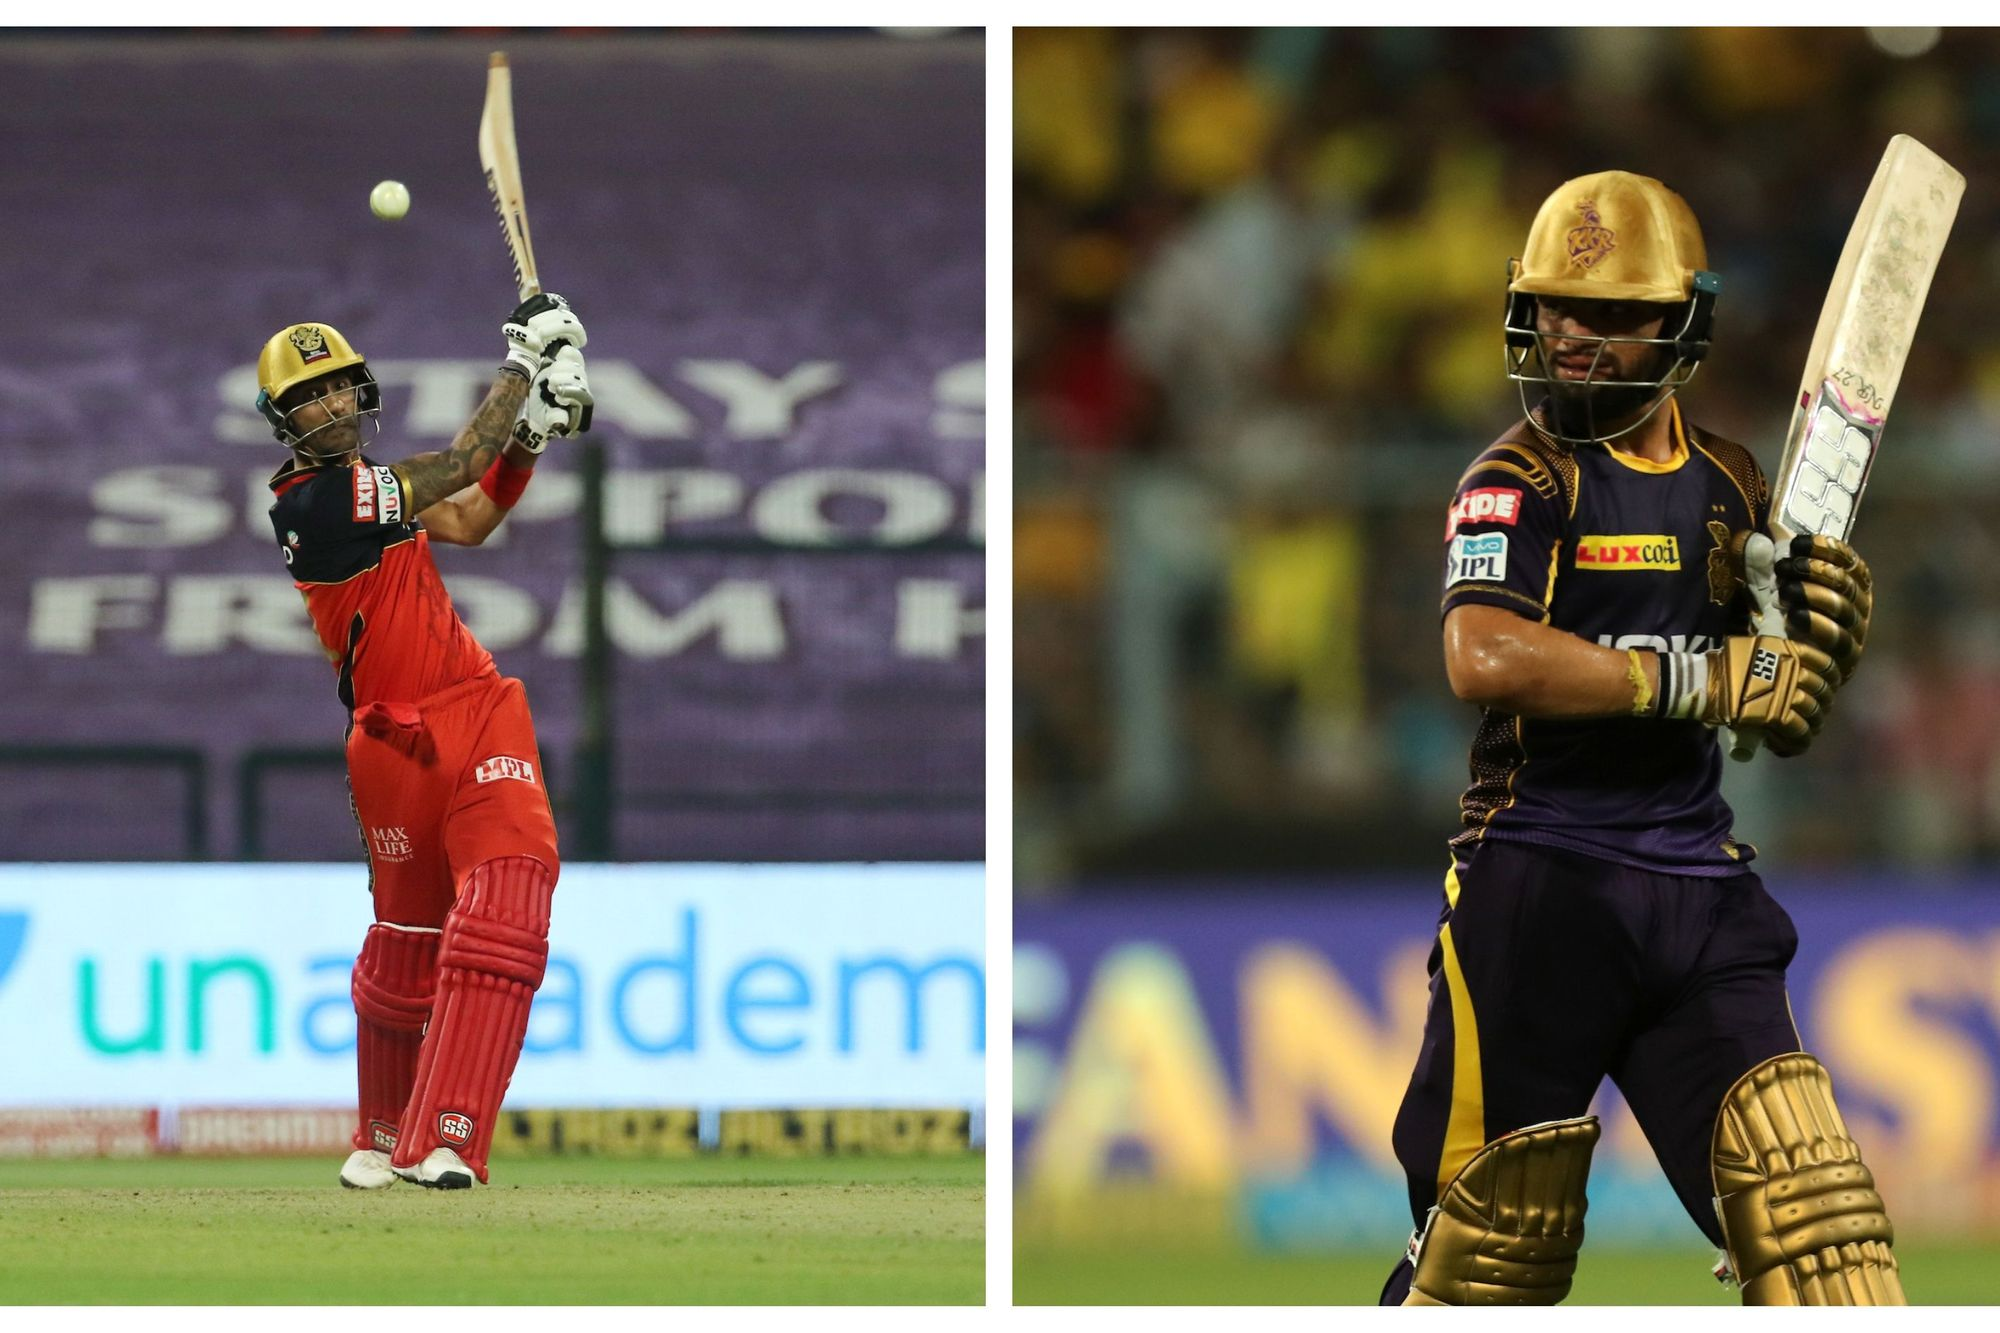 IPL: Gurkeerat Singh Mann signs up with Kolkata Knight Riders as replacement for Rinku Singh